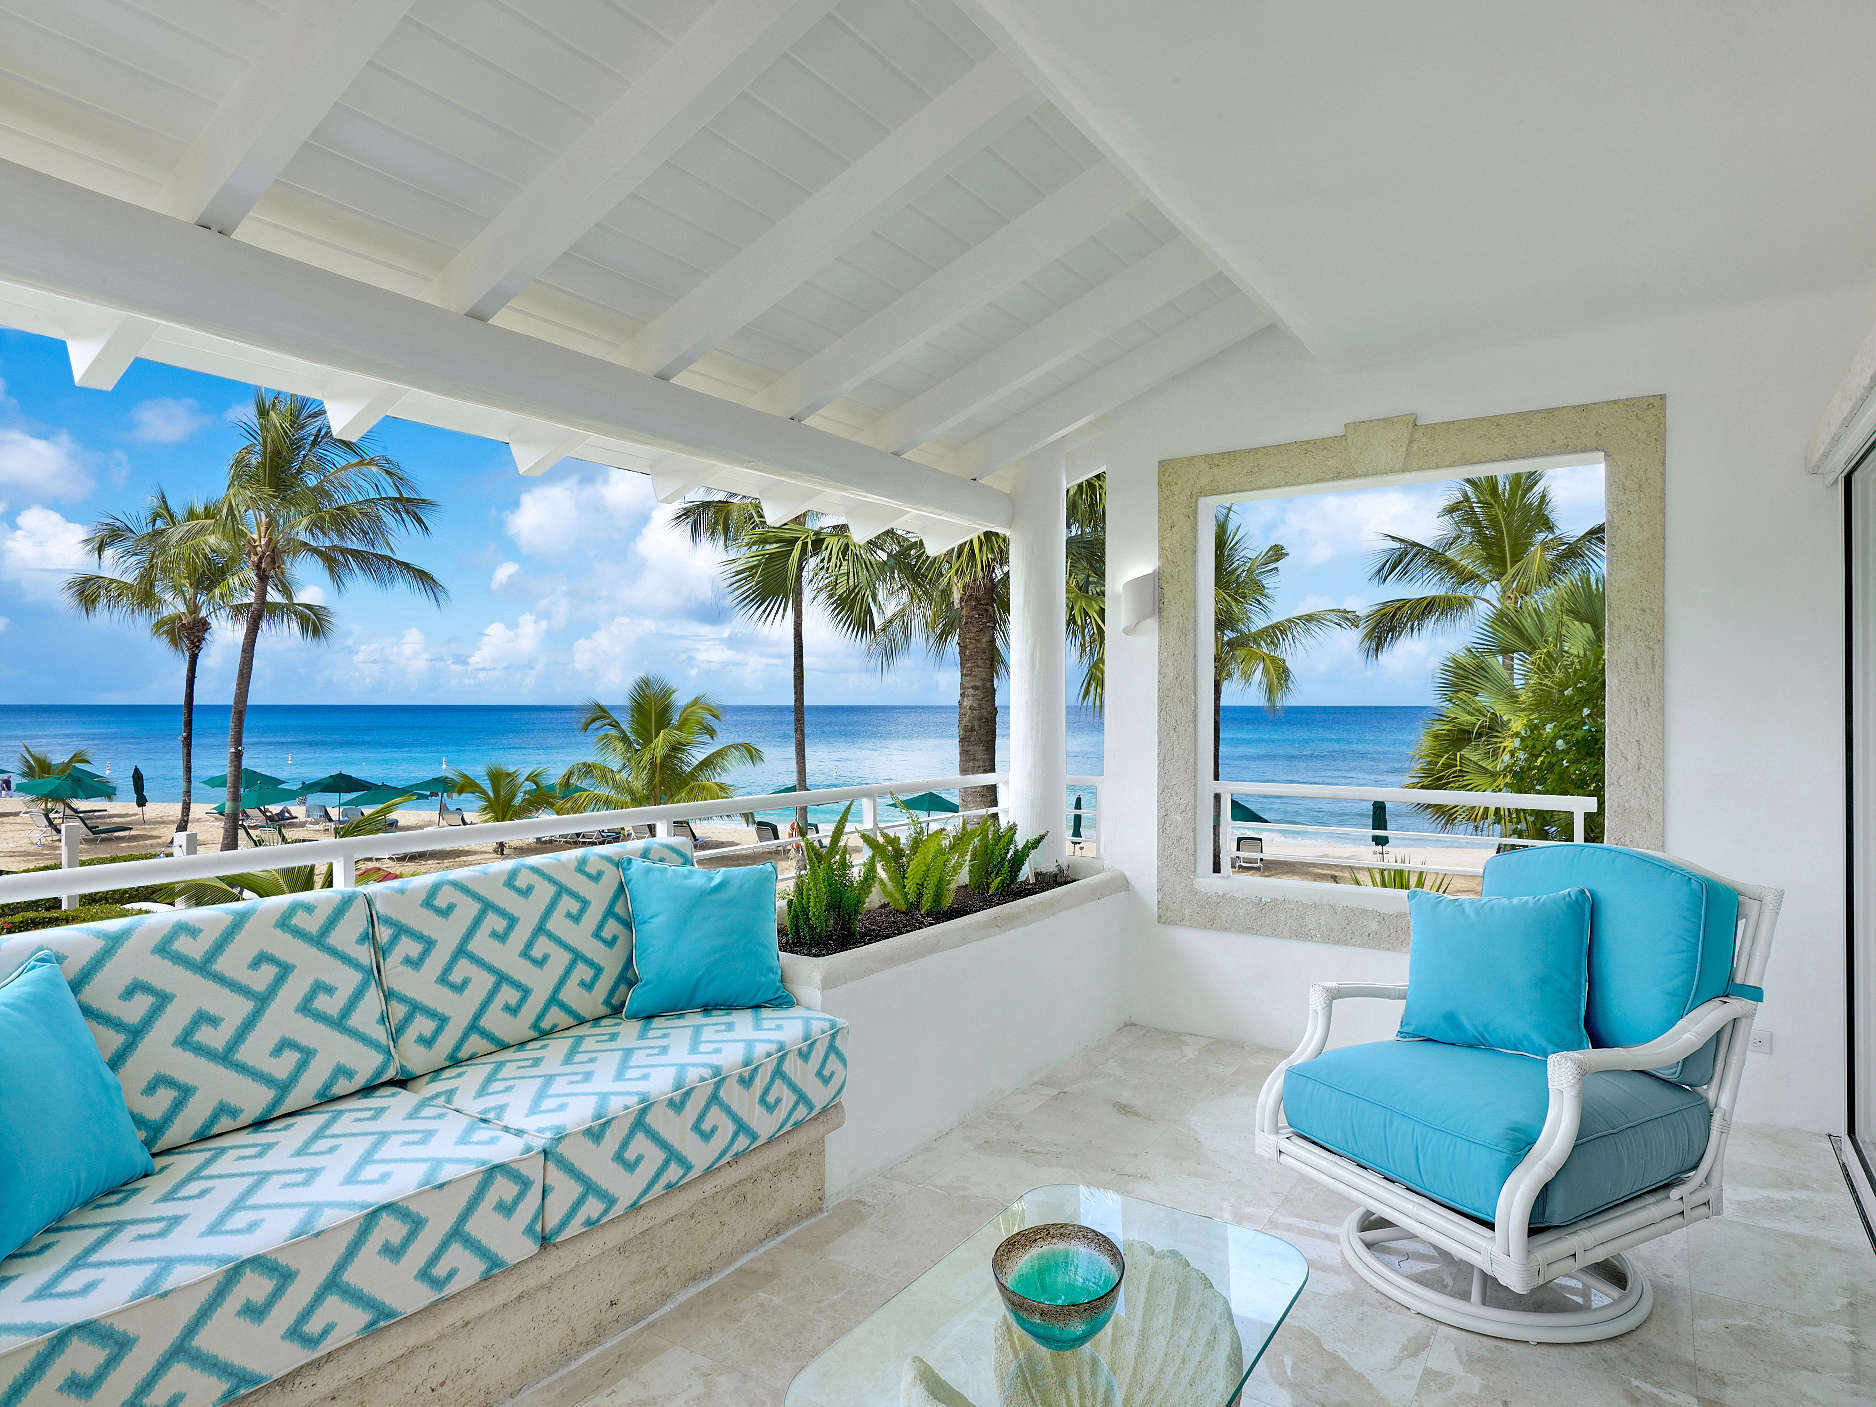 Luxury villa rentals caribbean - Barbados - St james - Porters - Glitter Bay 201 | Eternity - Image 1/9